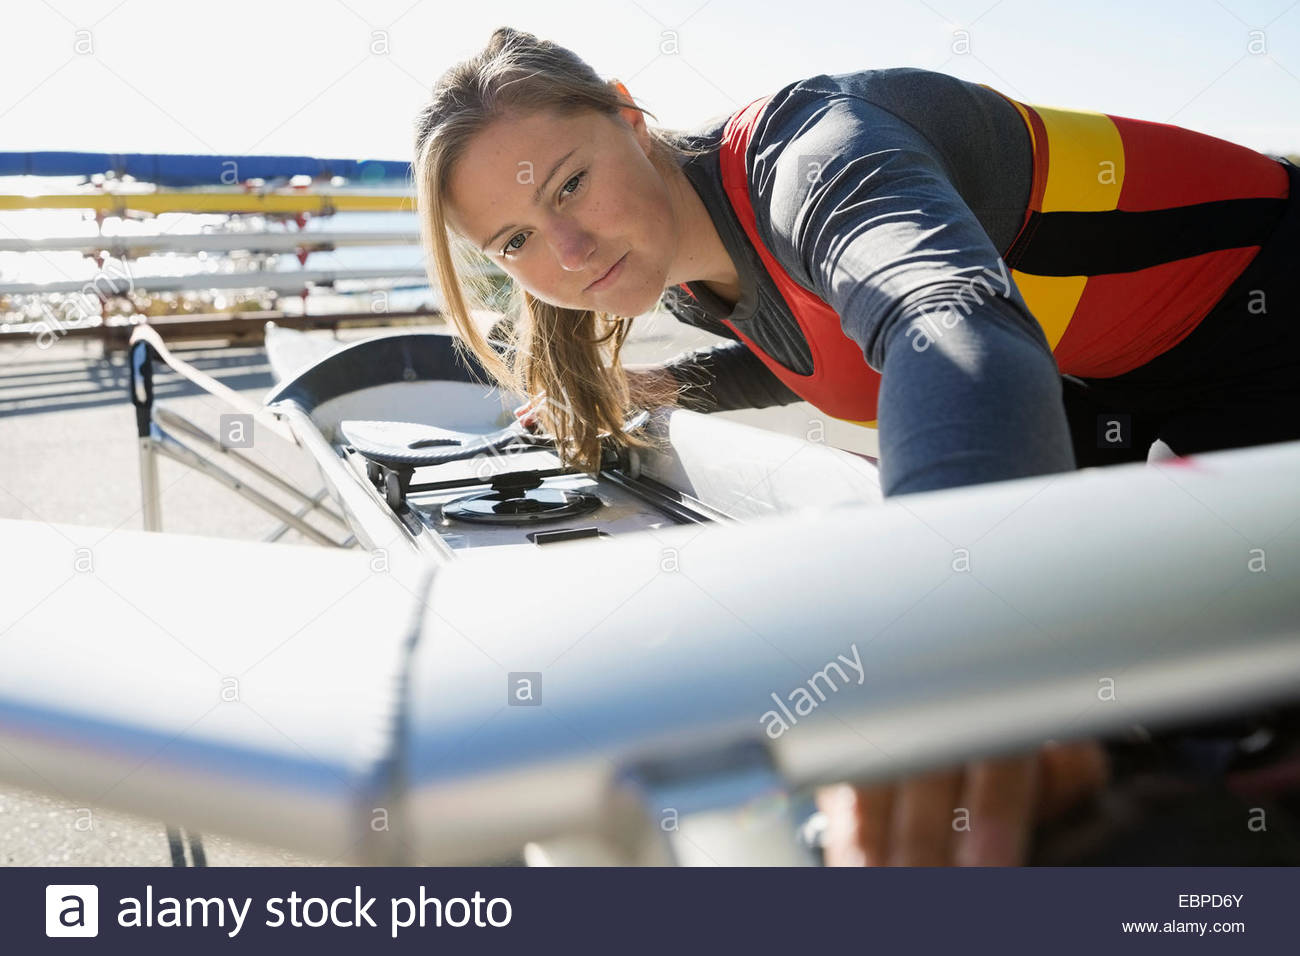 Rower examining scull - Stock Image